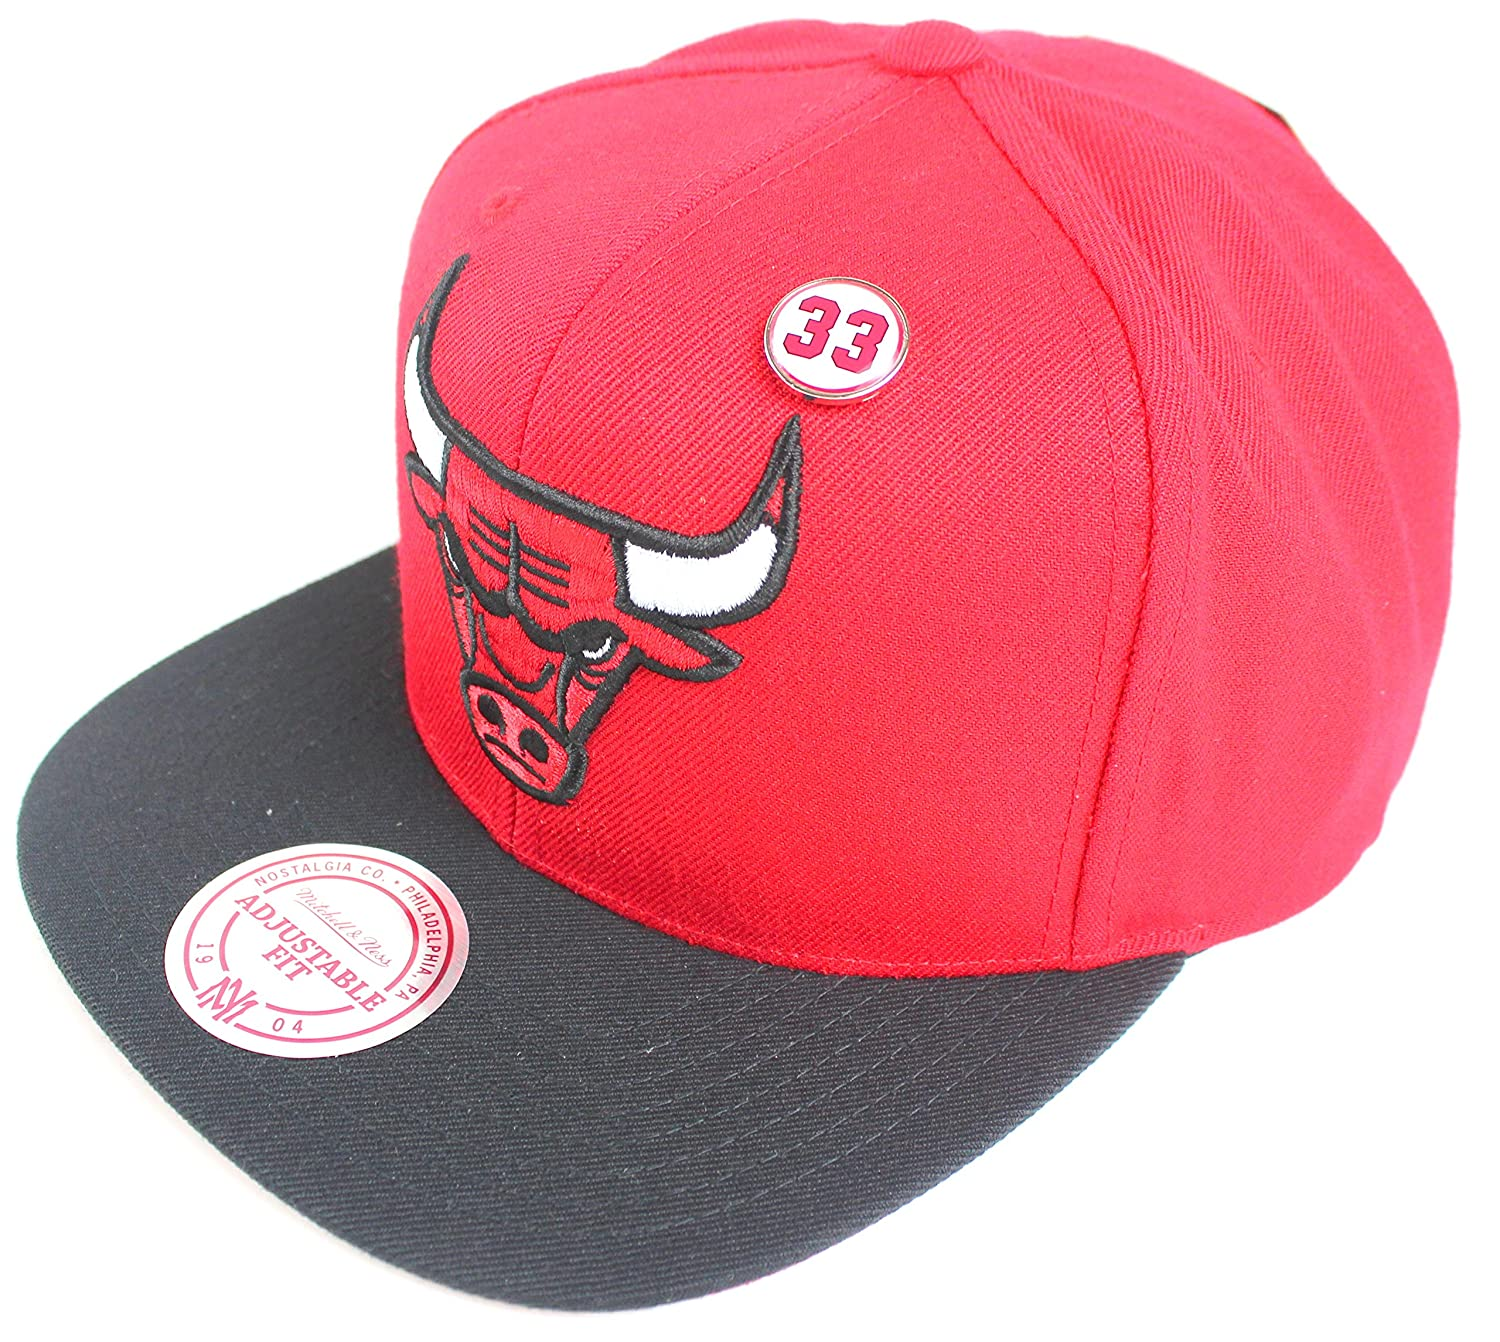 e045baeb423 Amazon.com   Mitchell   Ness Scottie Pippen Chicago Bulls  33 NBA Pin Snapback  Hat - Red Black   Sports   Outdoors